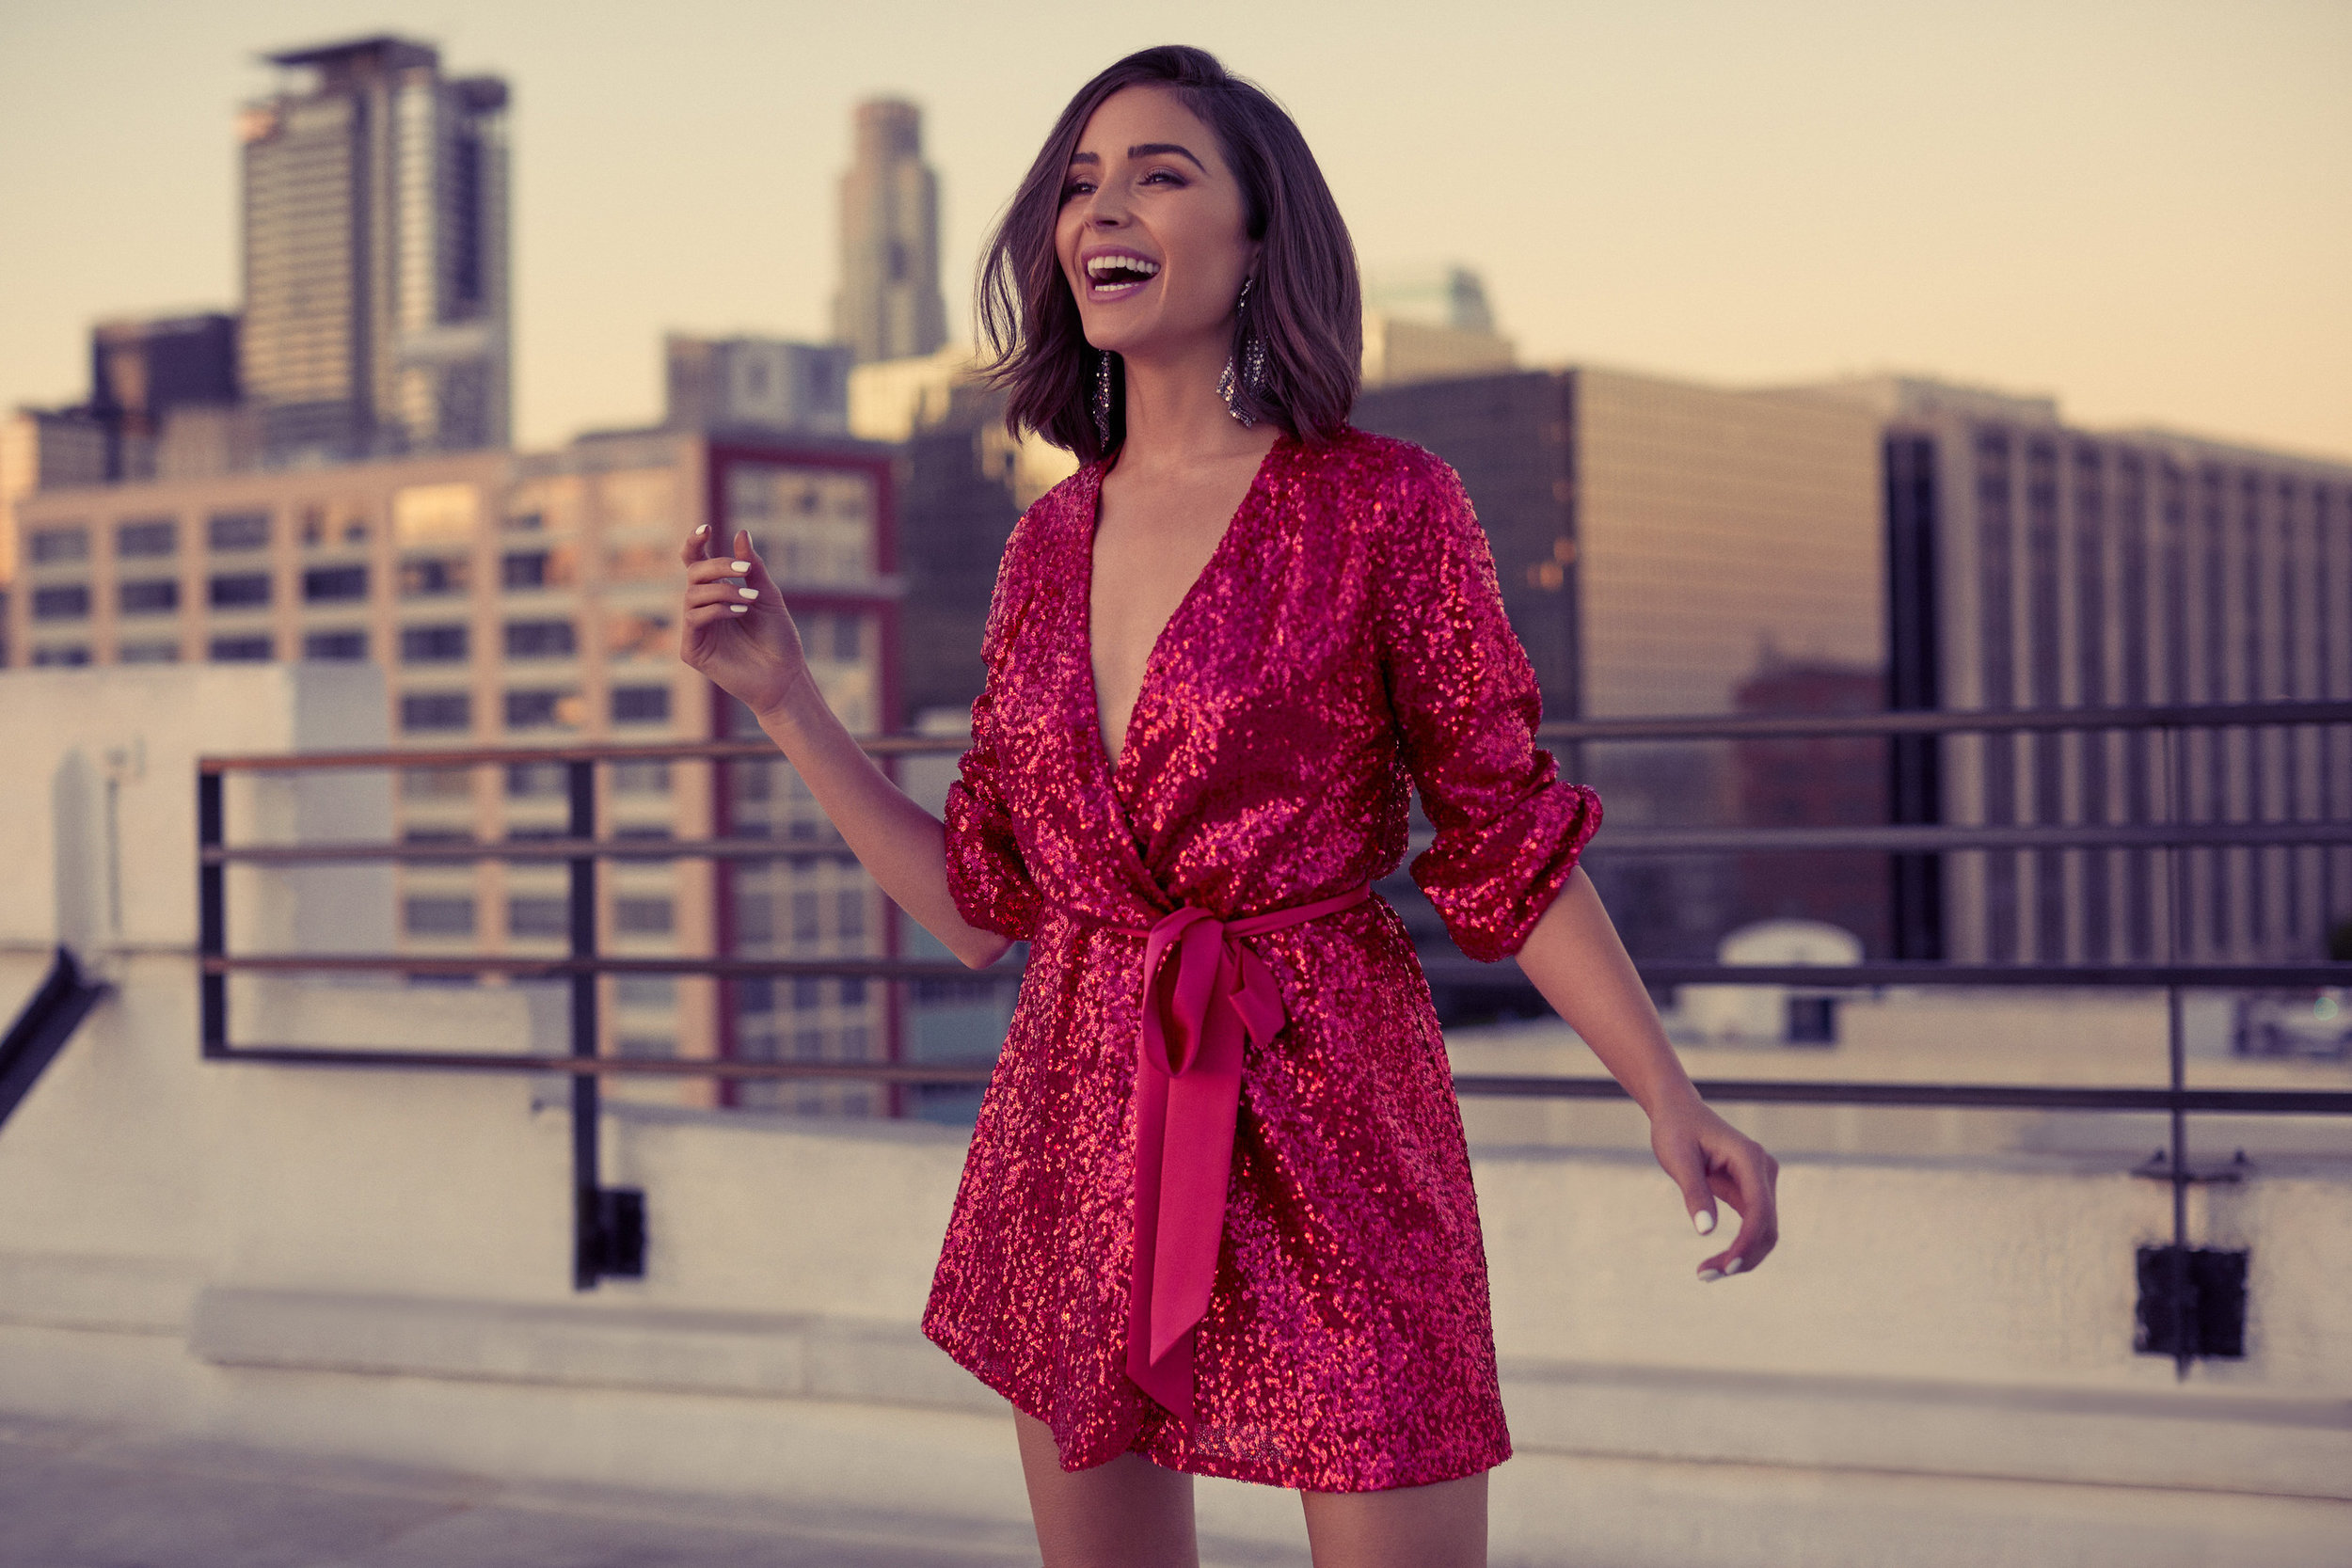 Available in 300 stores and online at Express.com/OliviaCulpo -